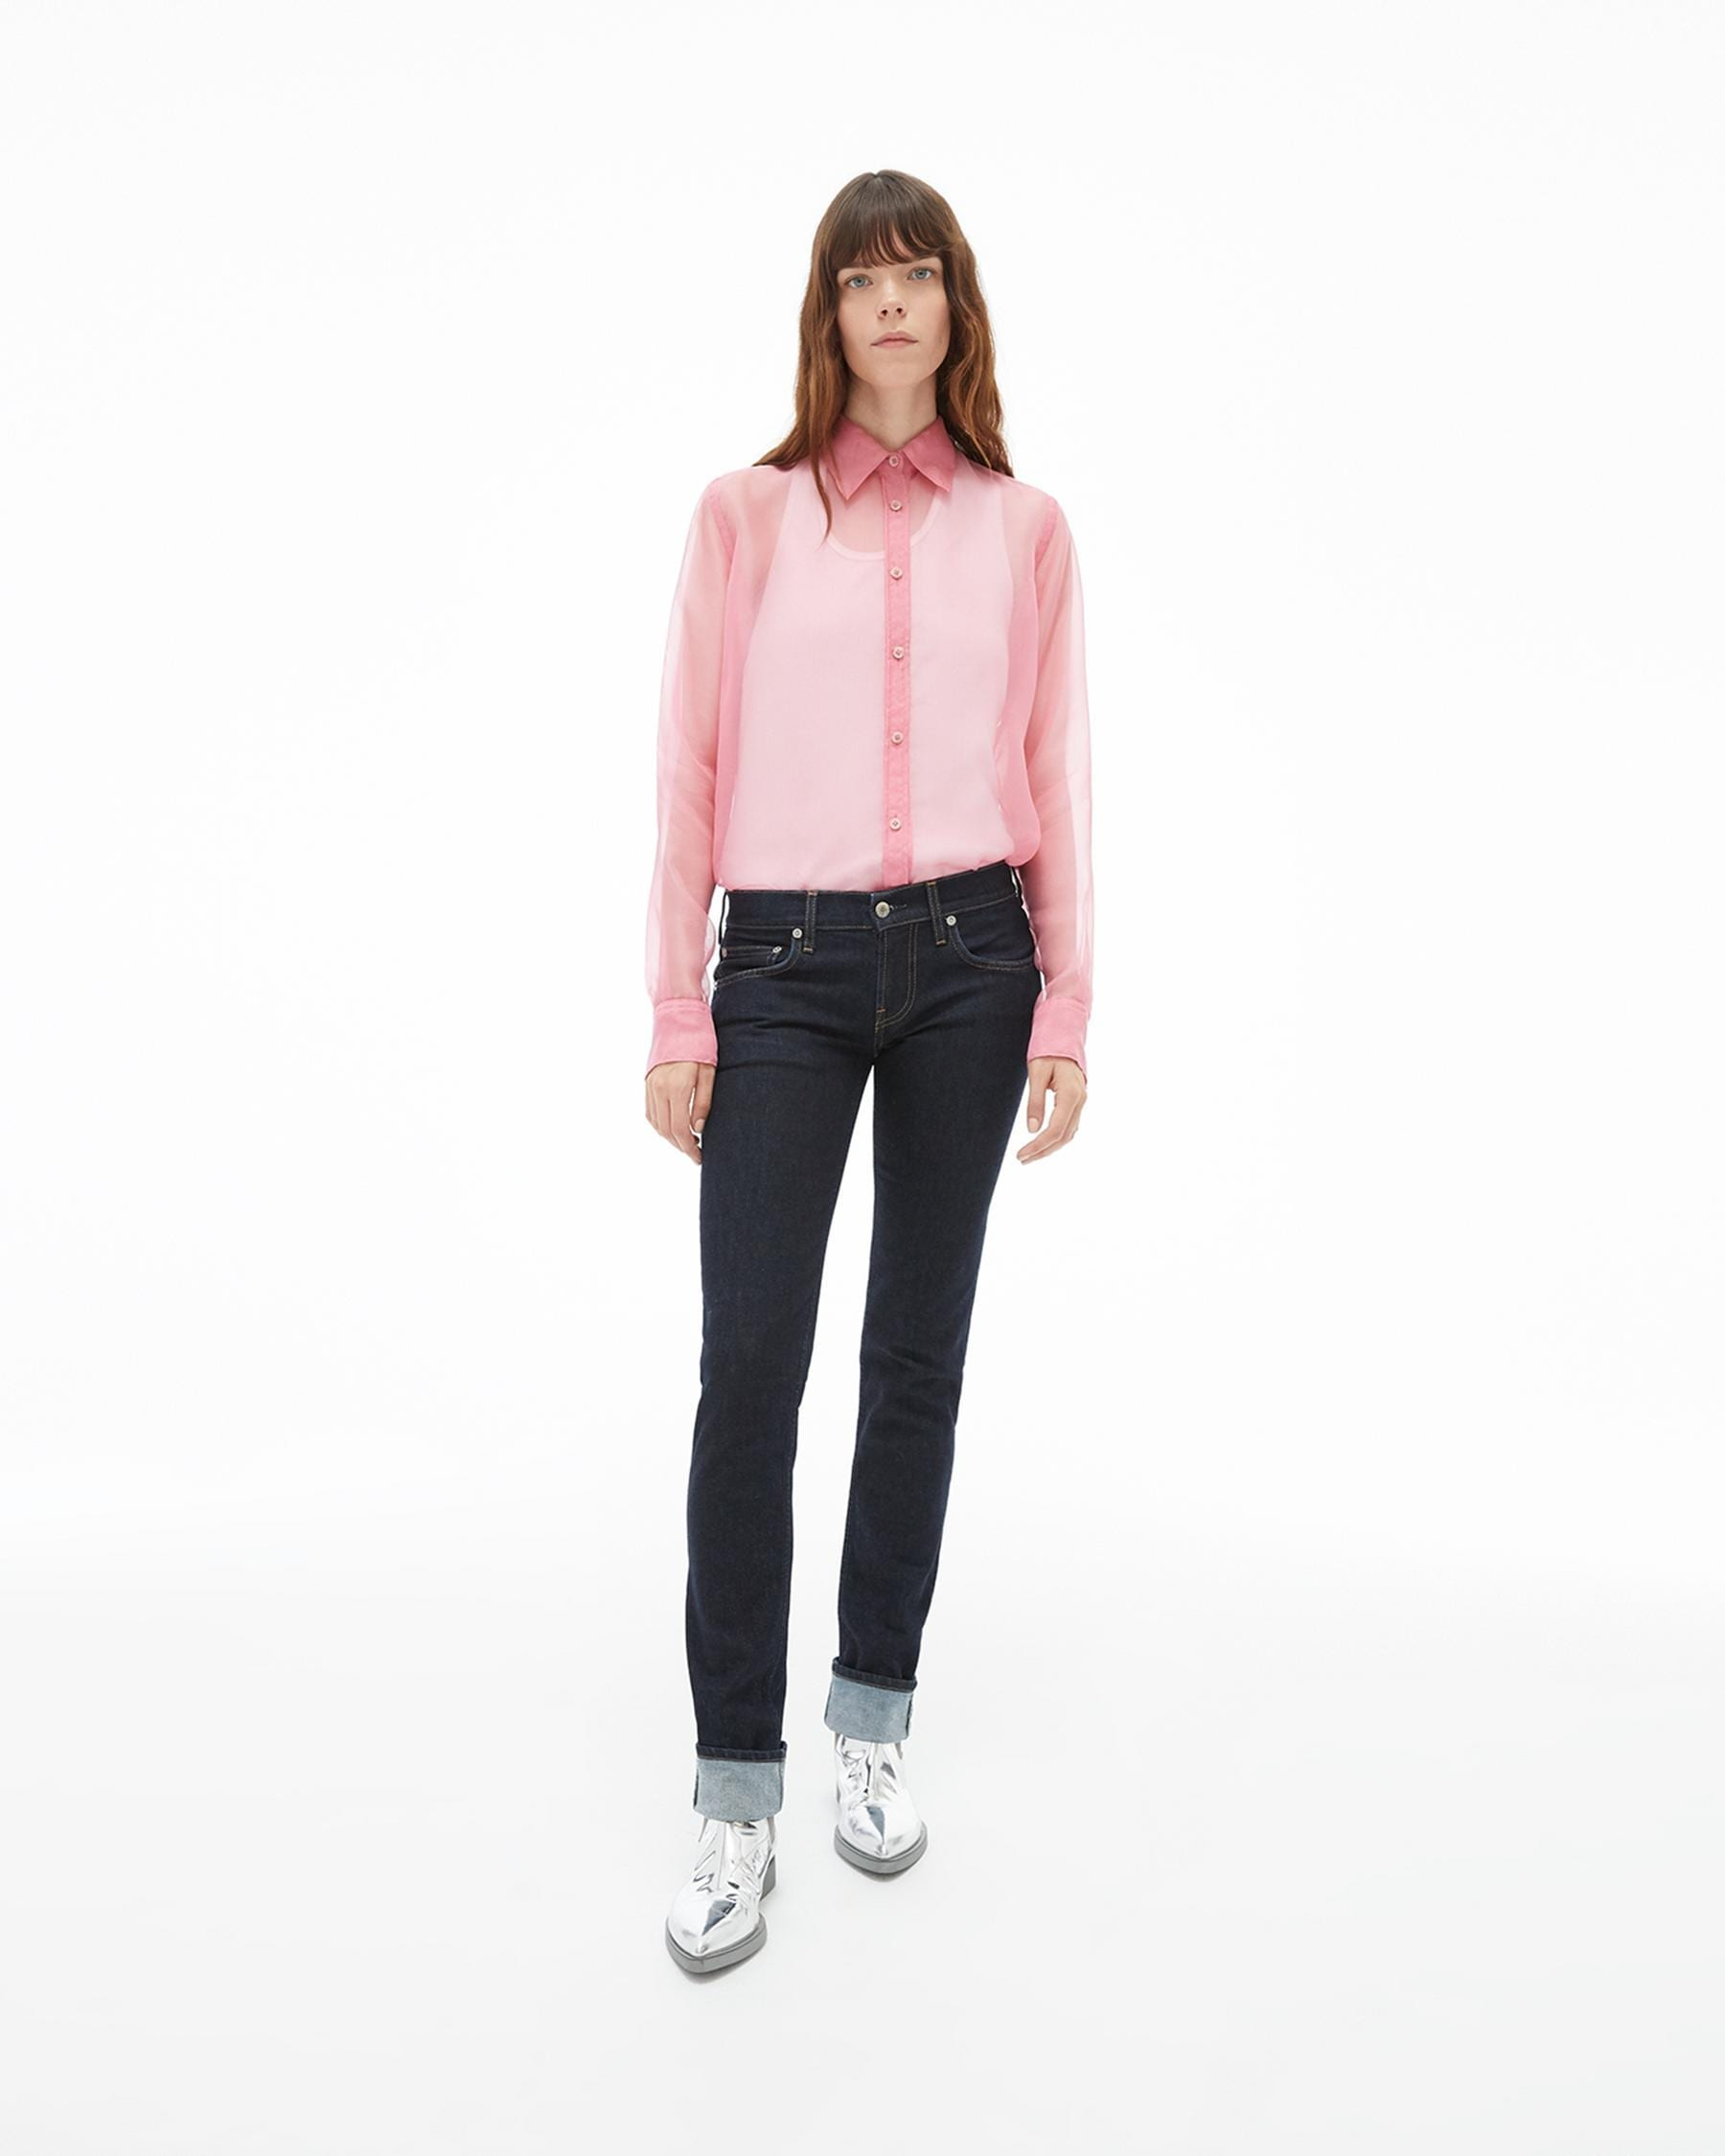 Helmut Lang: Up to 80% off sale styles + extra 10% off